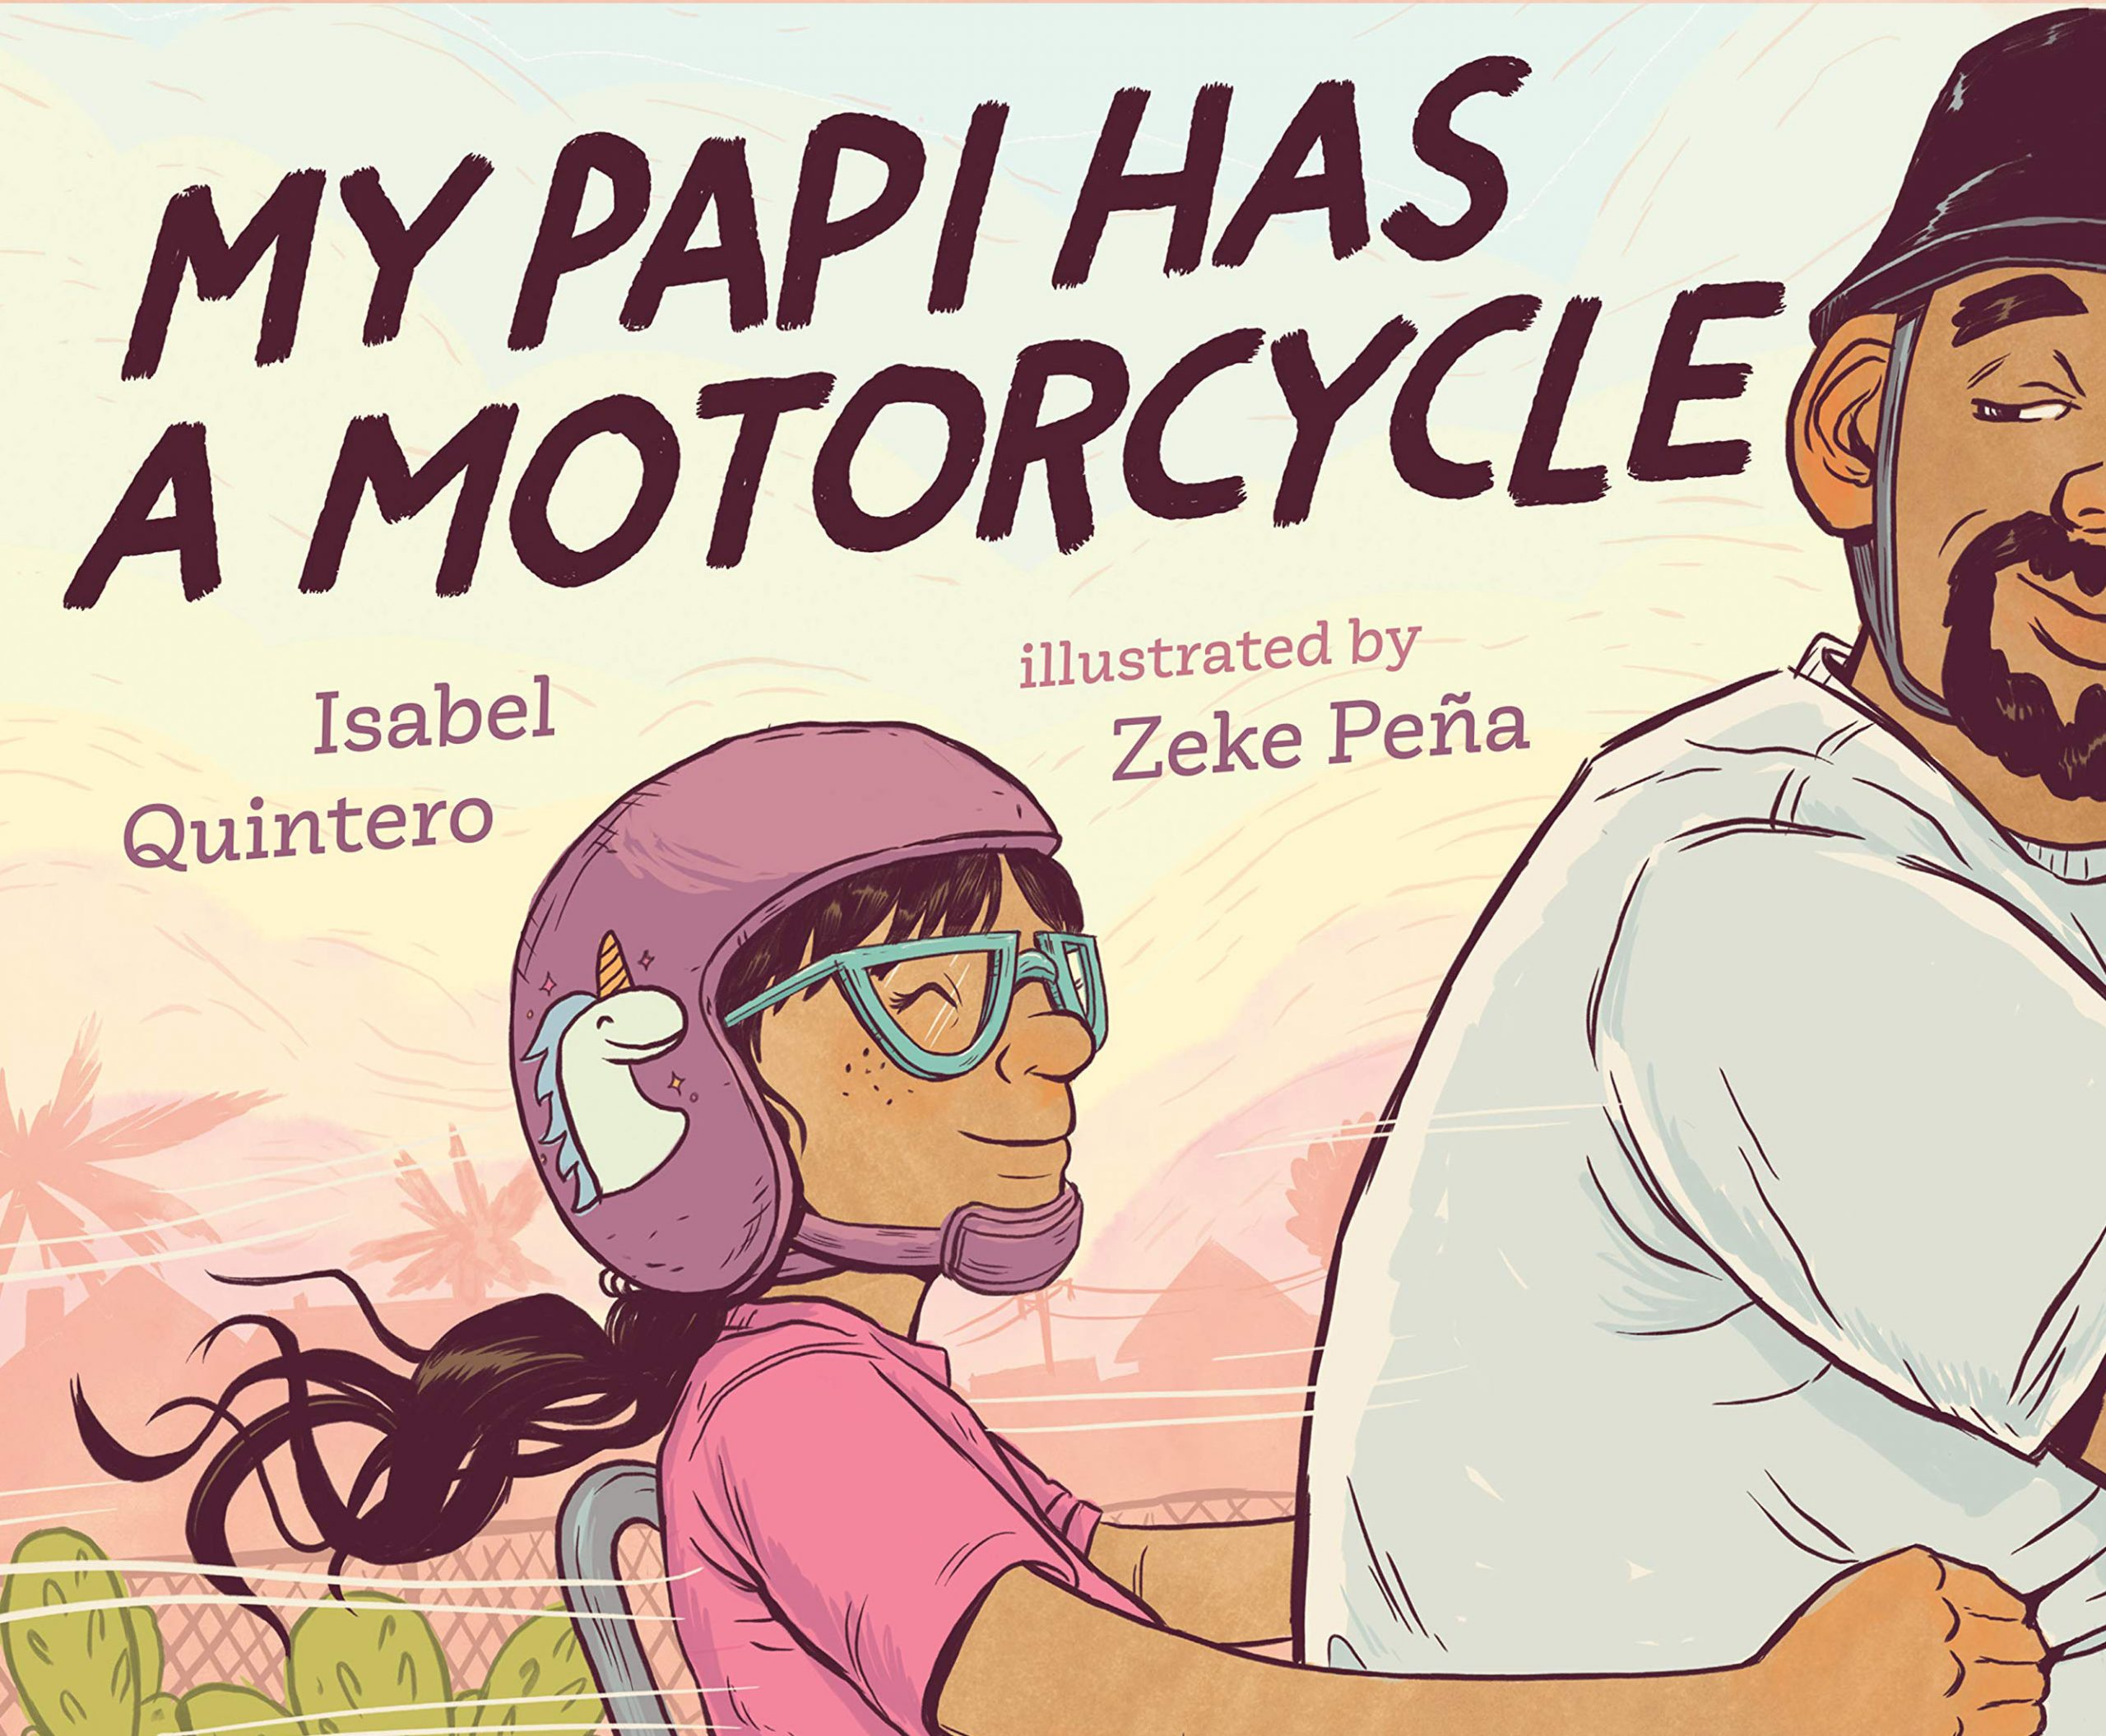 MY PAPI HAS A MOTORCYCLE   ISABEL QUINTERO